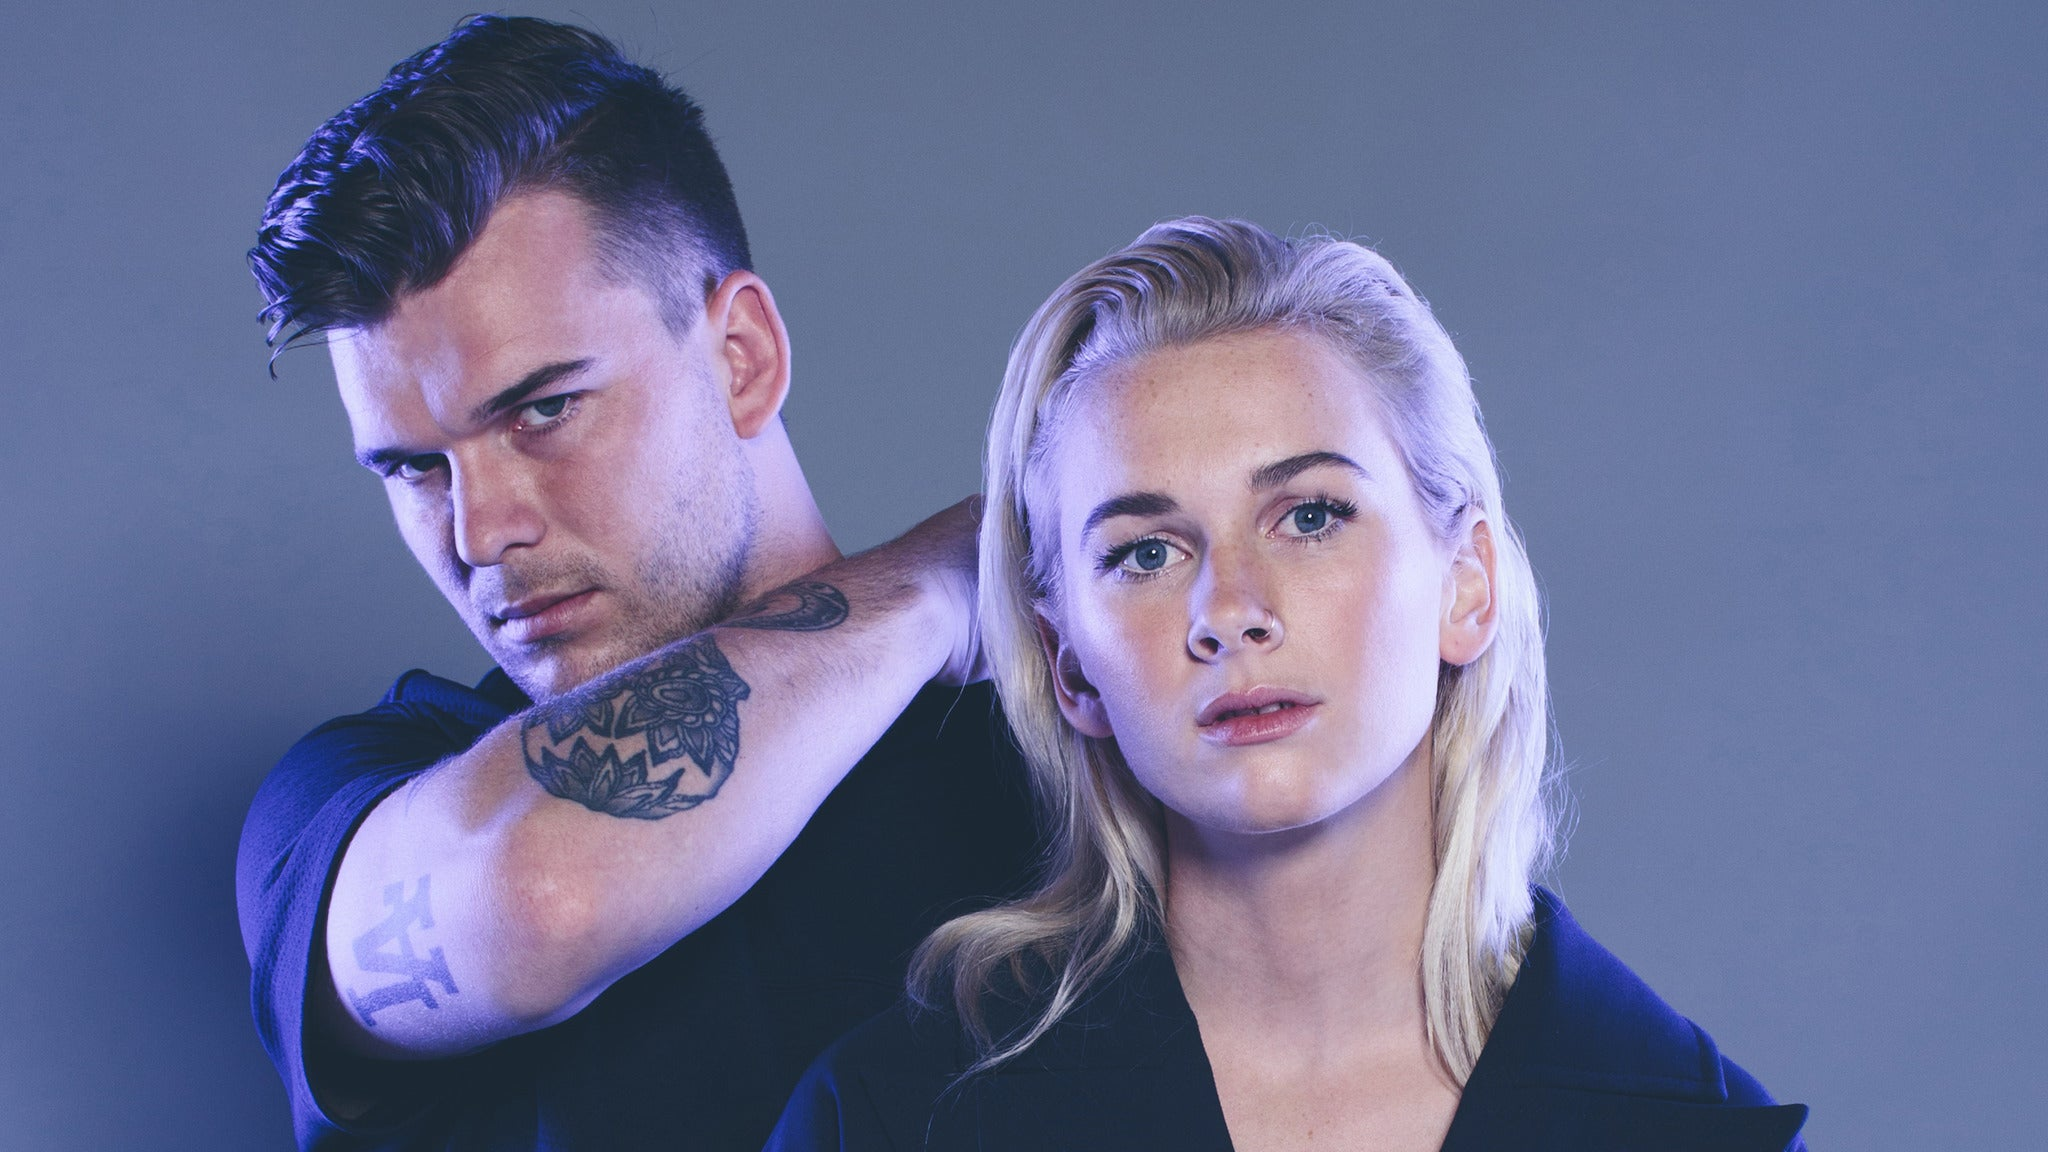 Broods presented by Do502 at Mercury Ballroom